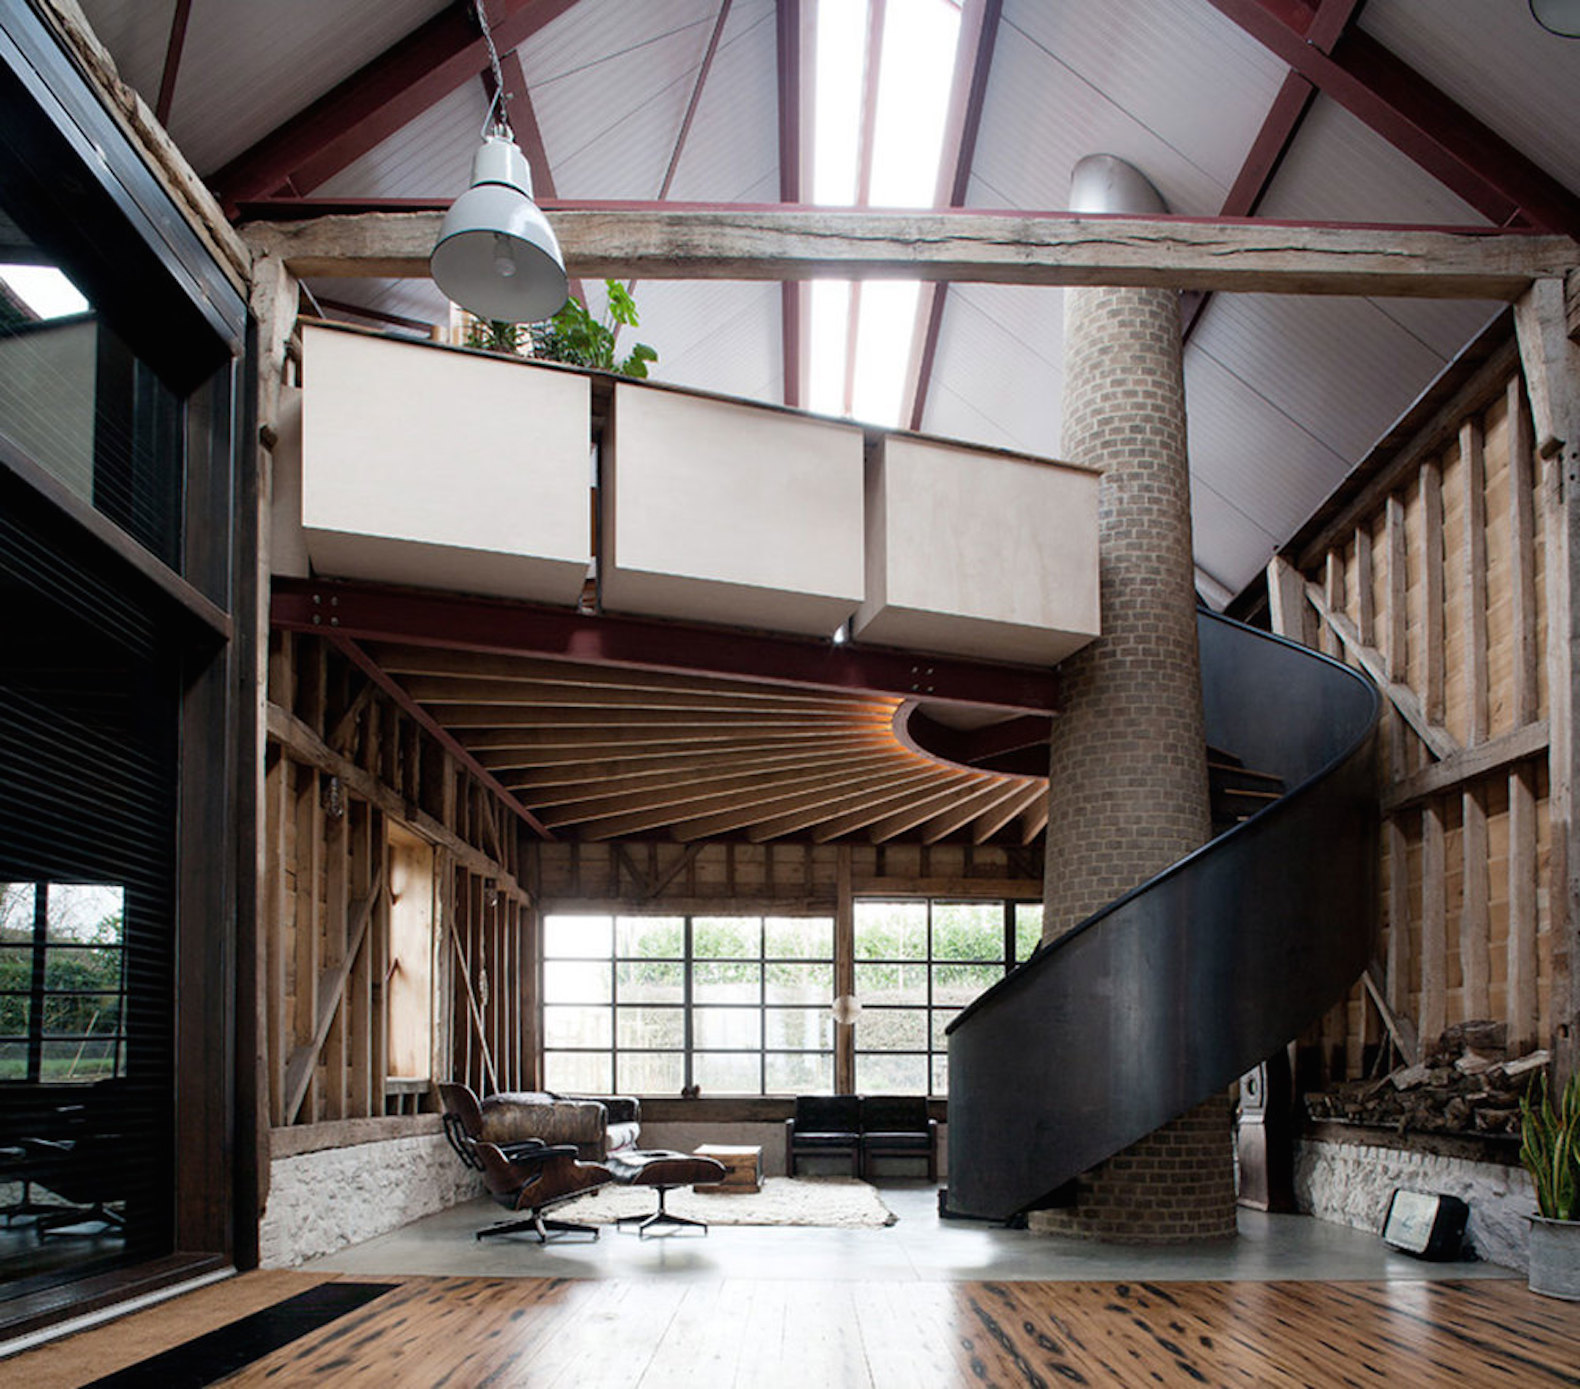 Renovated Barn Homes: Ancient Party Barn Blends Historic Preservation With Energy-smart Design